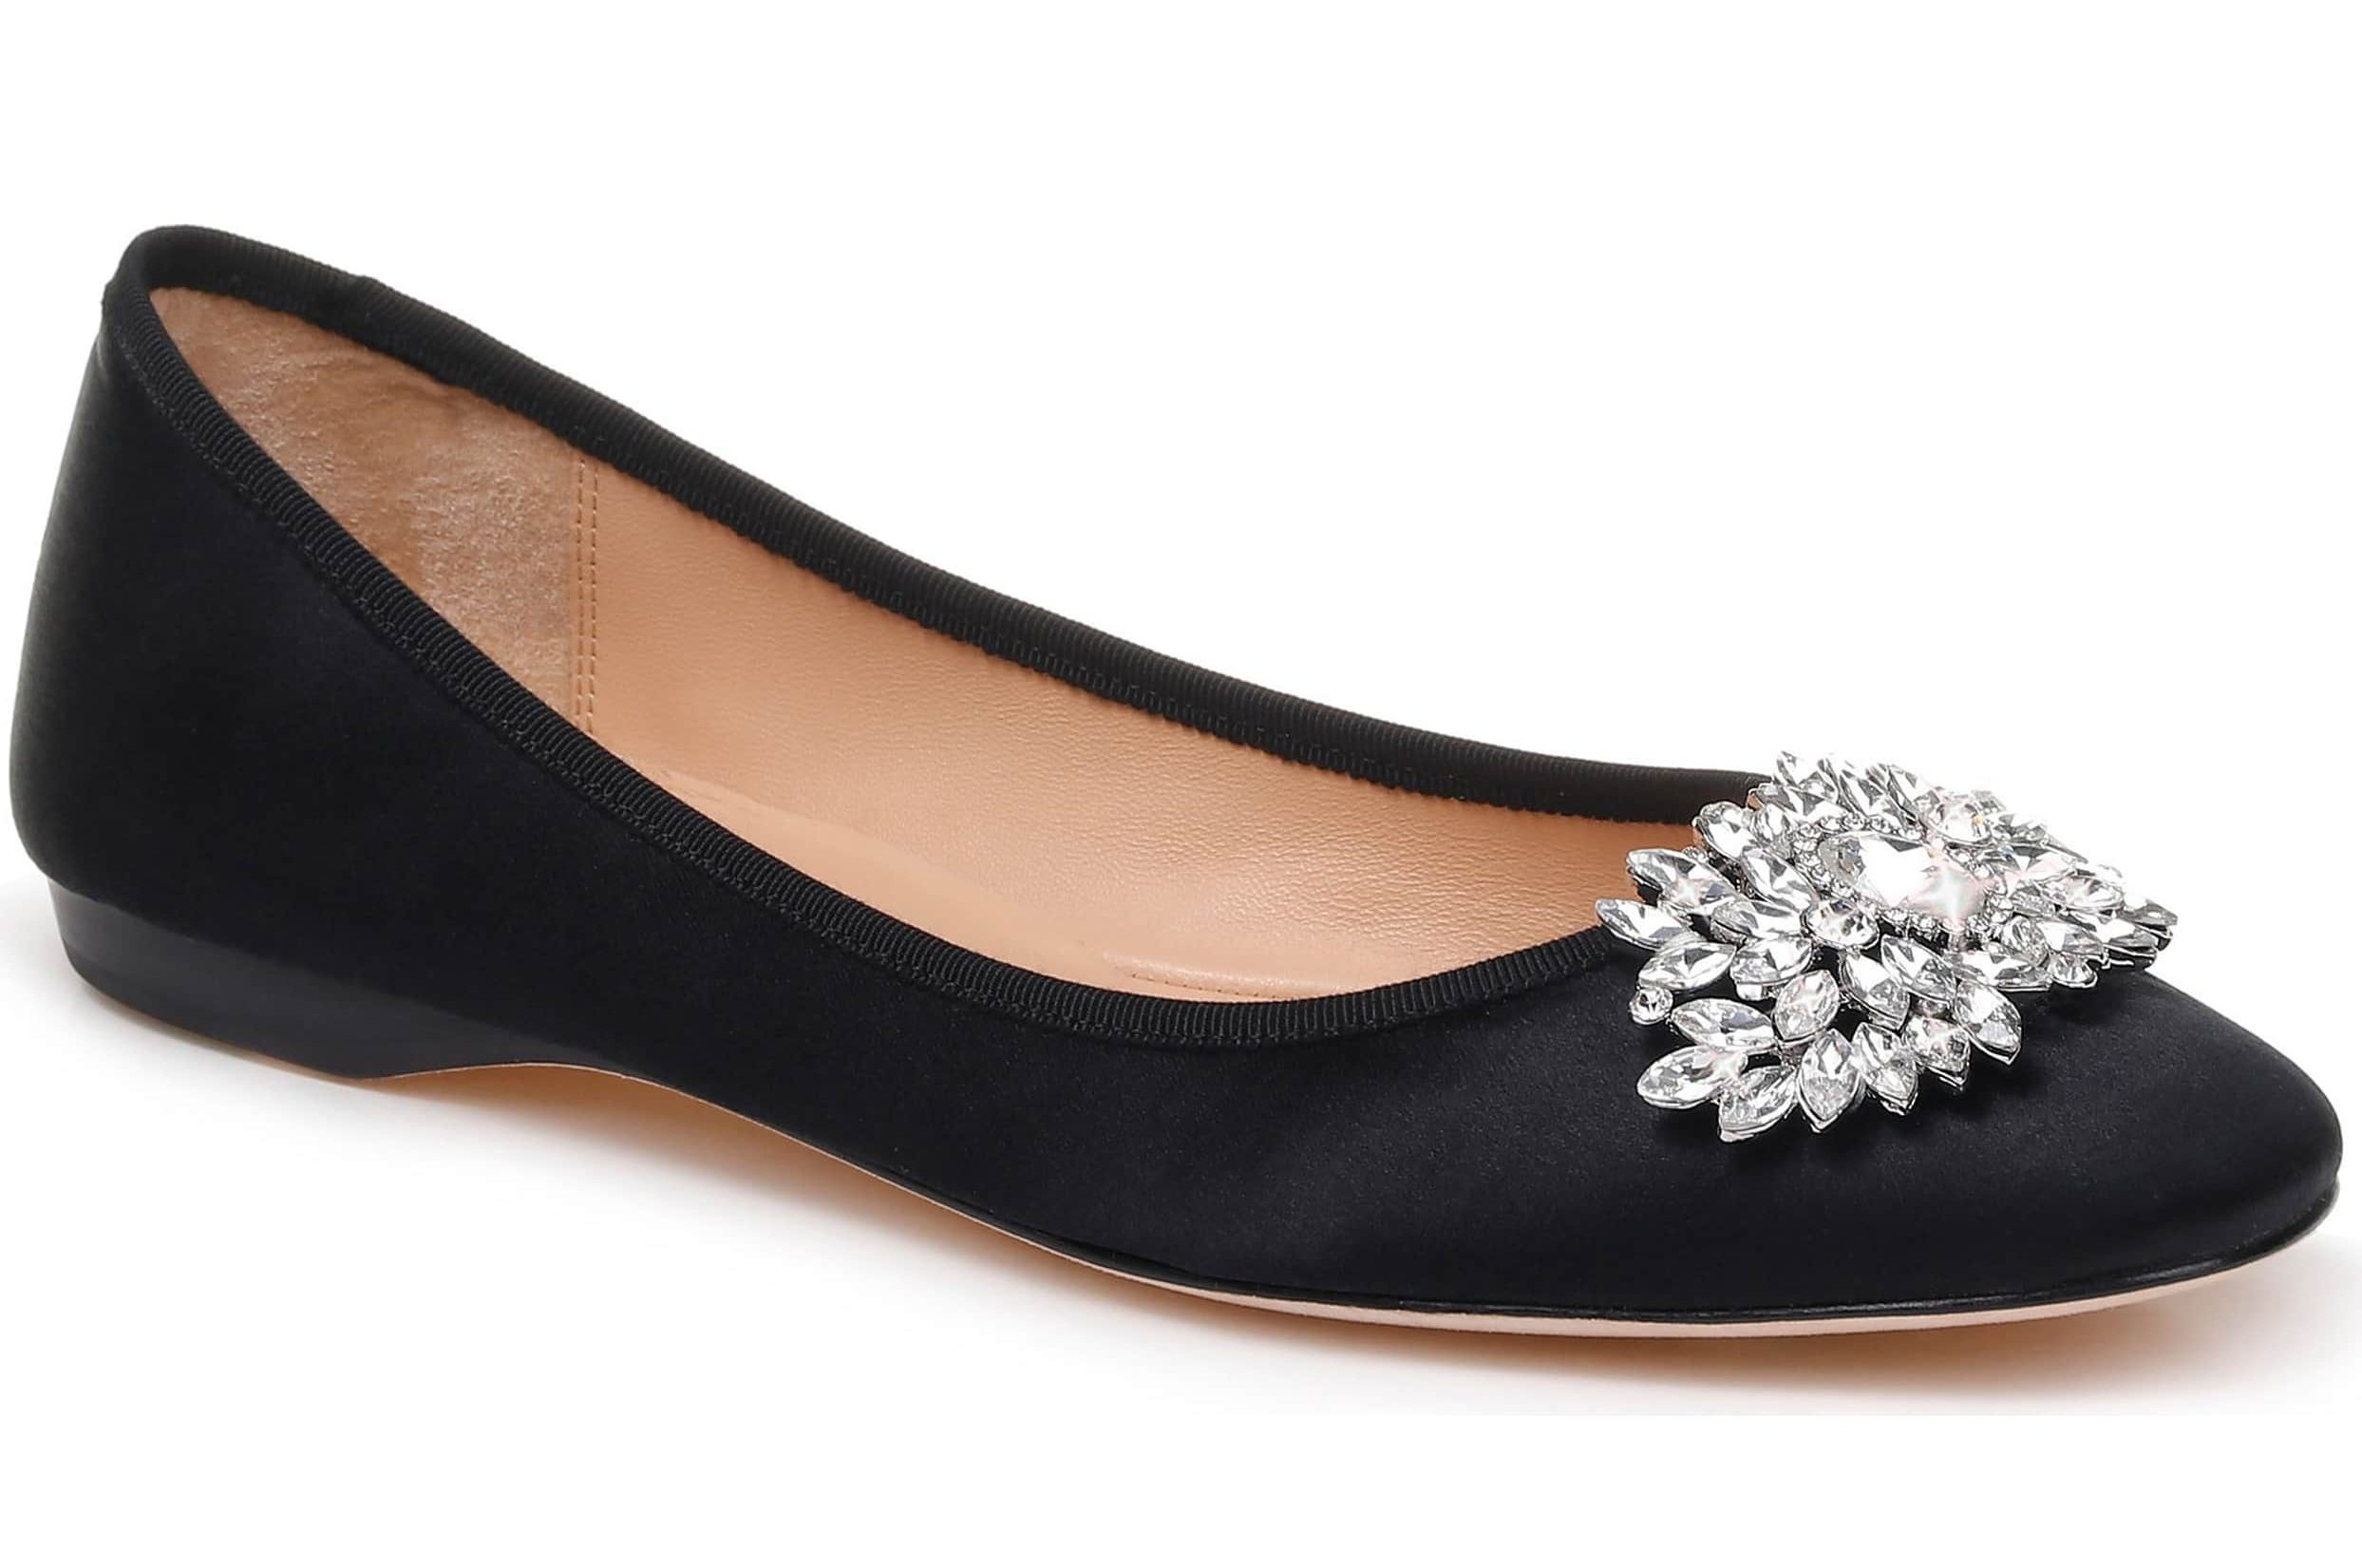 Bejeweled Foldable Flats To Wear When High Heels Start To Hurt